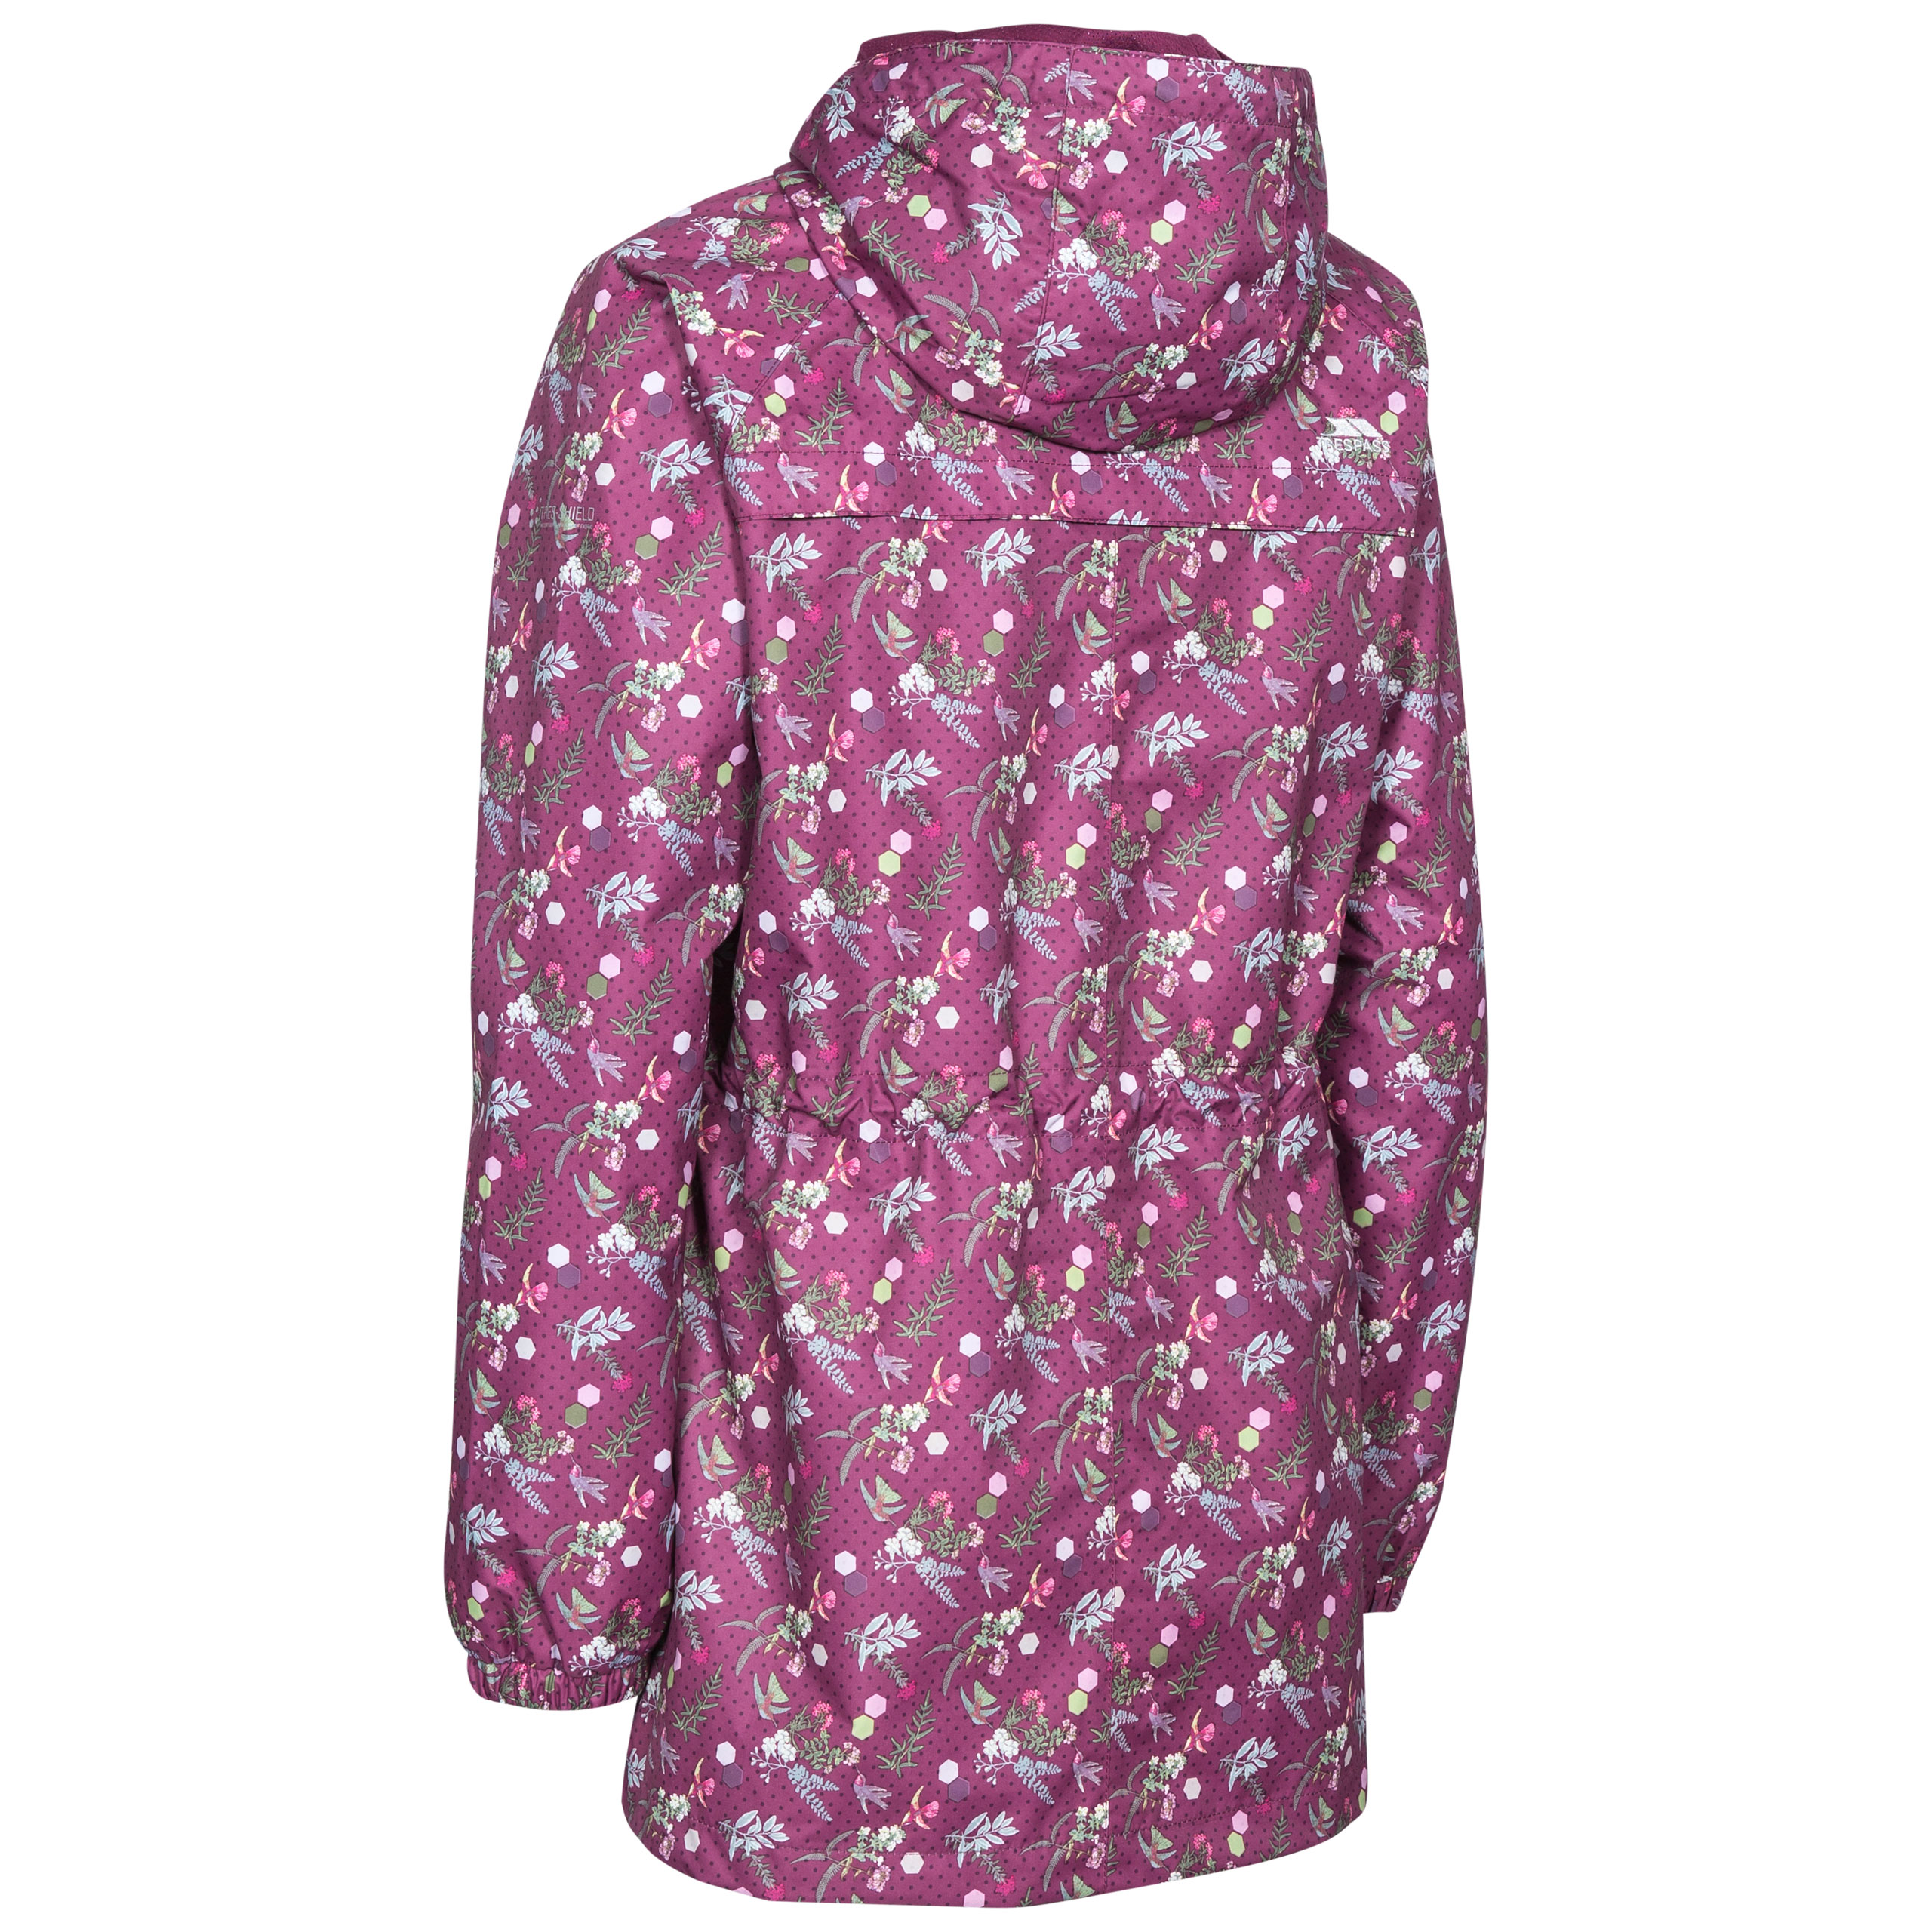 Trespass-Womens-Waterproof-Wind-Jacket-Hooded-Raincoat-Floral-Print thumbnail 14